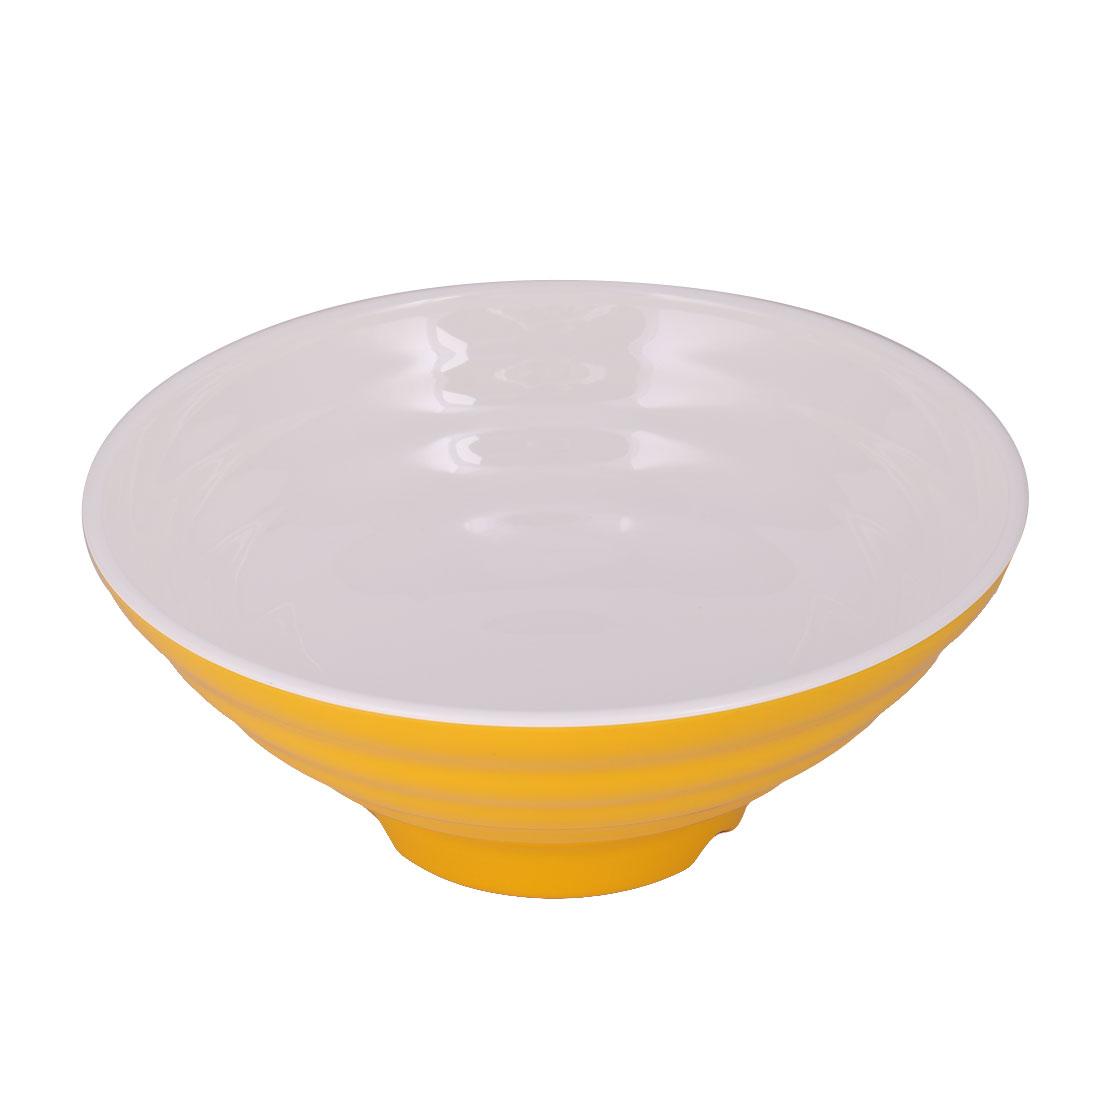 Home Kitchen Plastic Food Rice Soup Noodles Porridge Storage Container Bowl Yellow White